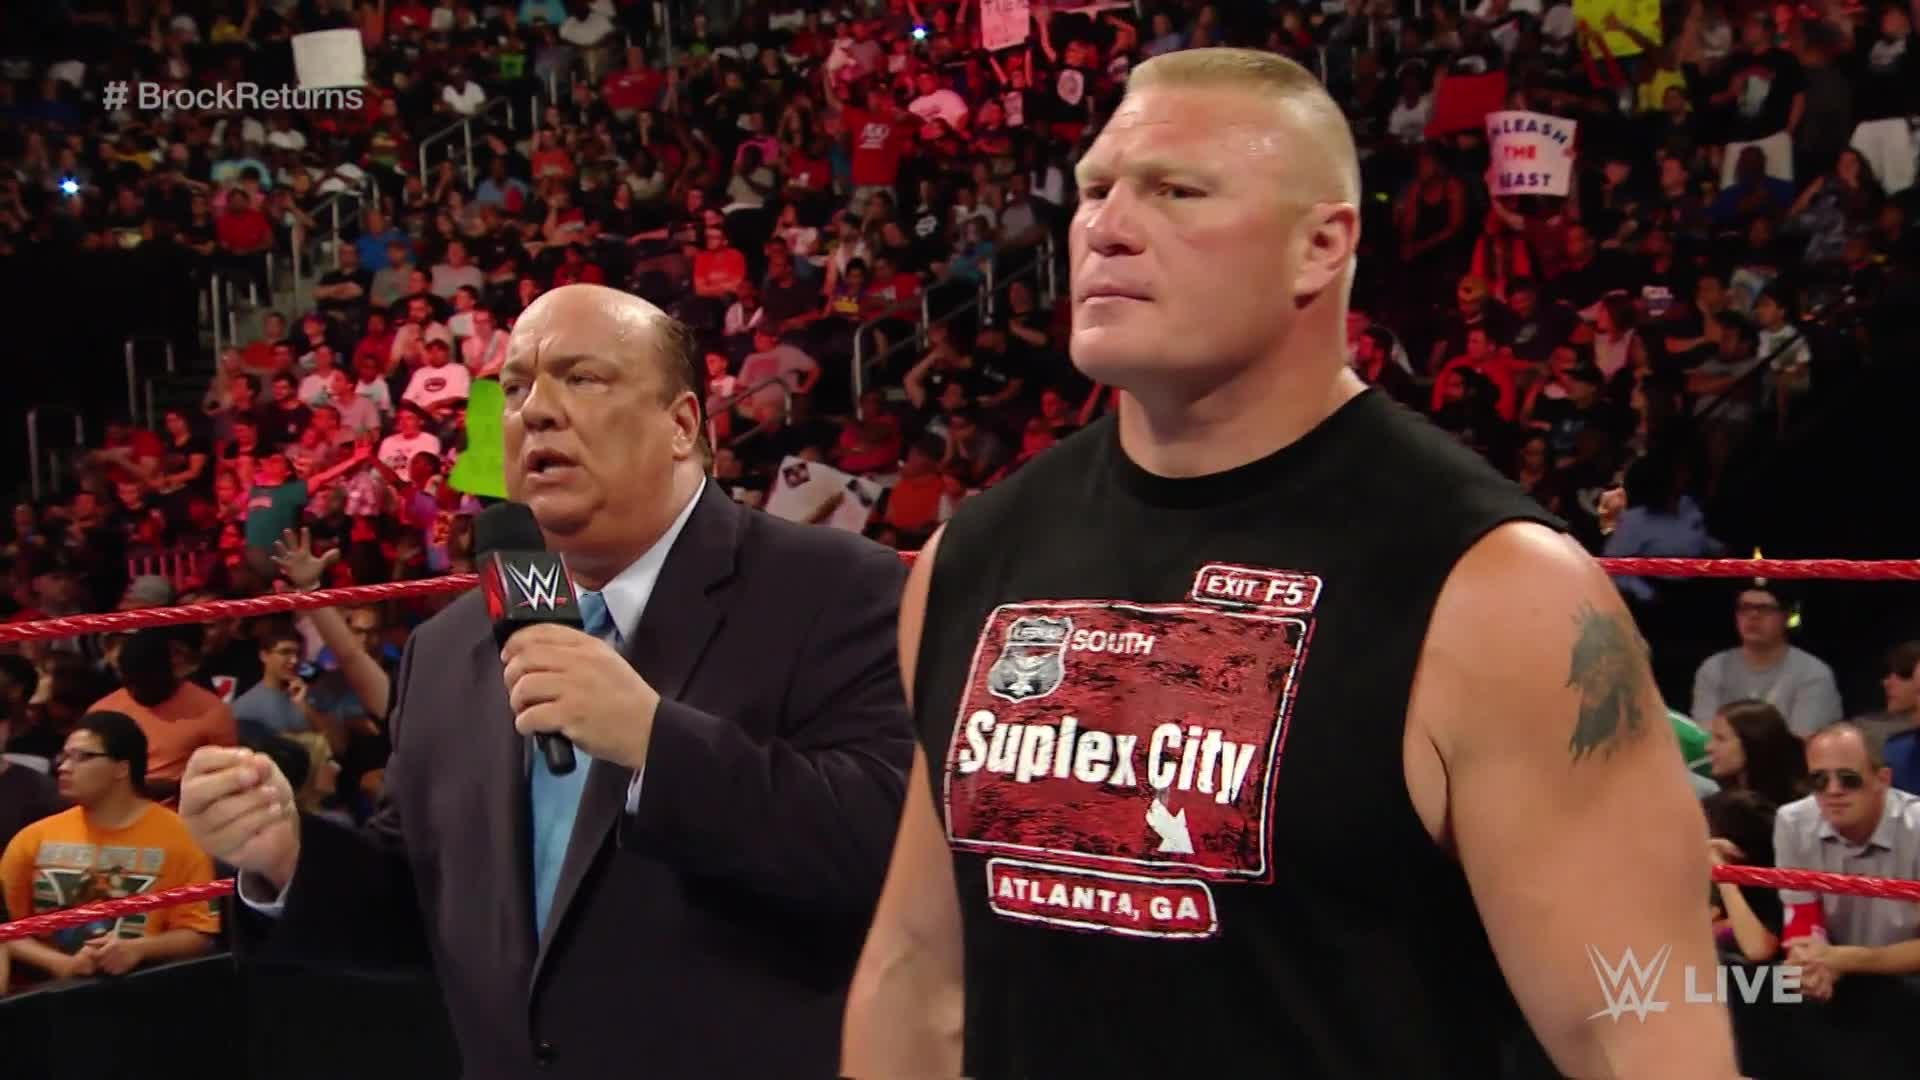 1920x1080 Brock Lesnar's return to Raw turned sour as he was attacked by Randy Orton,  just weeks before the two lock horns at SummerSlam